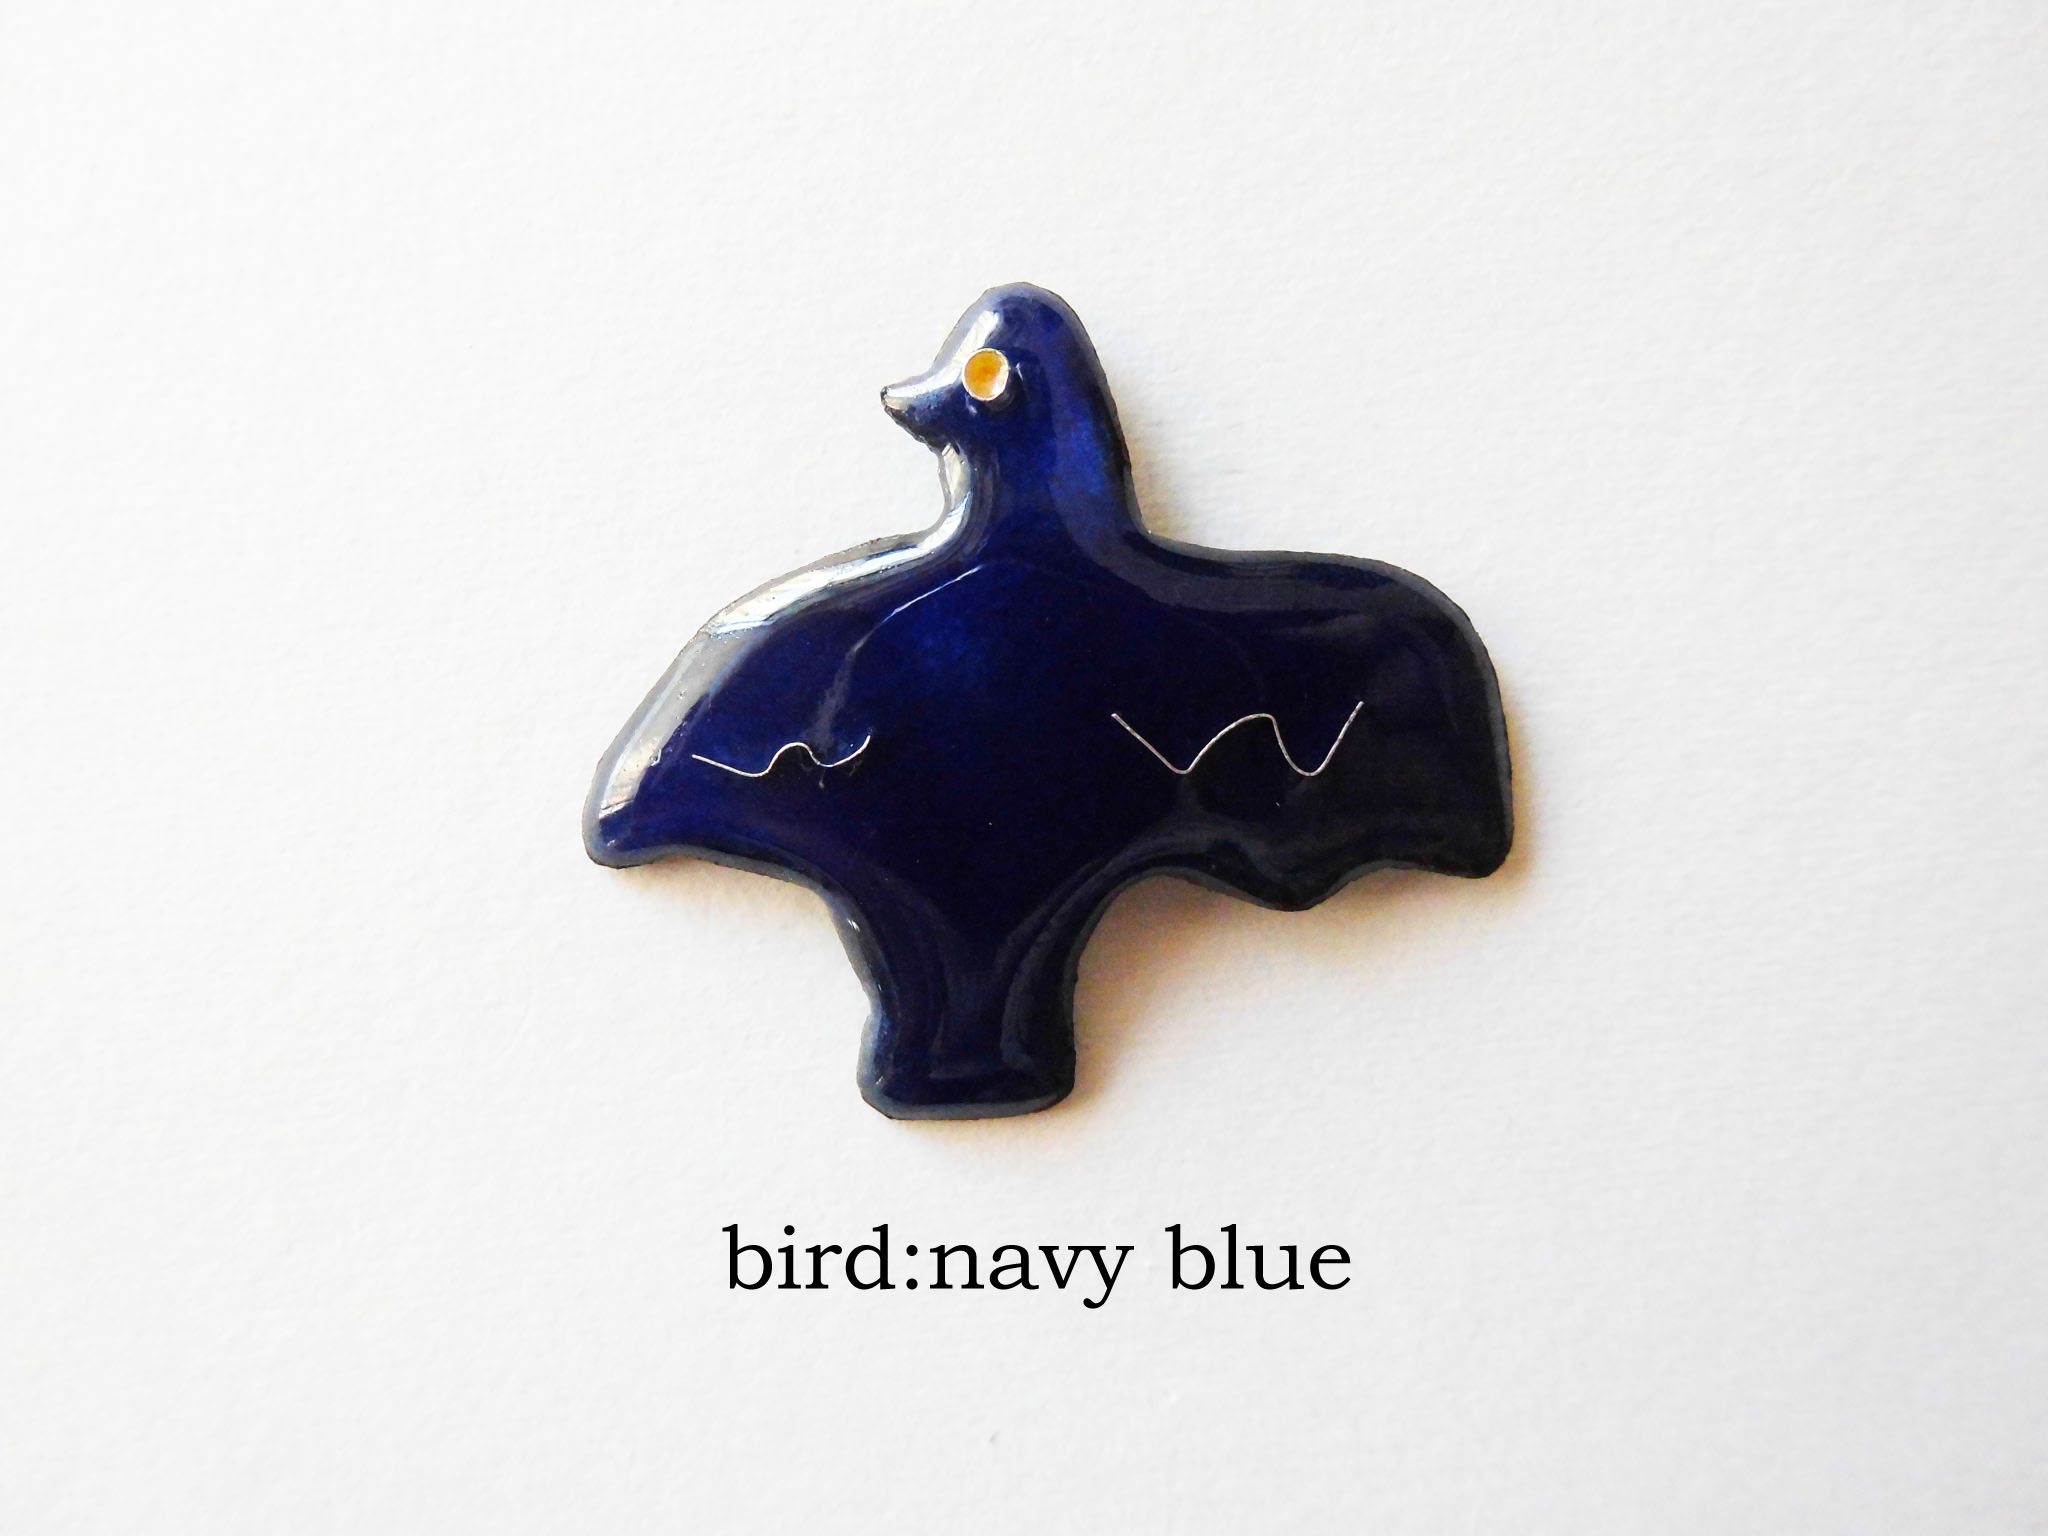 Bird(navy blue)